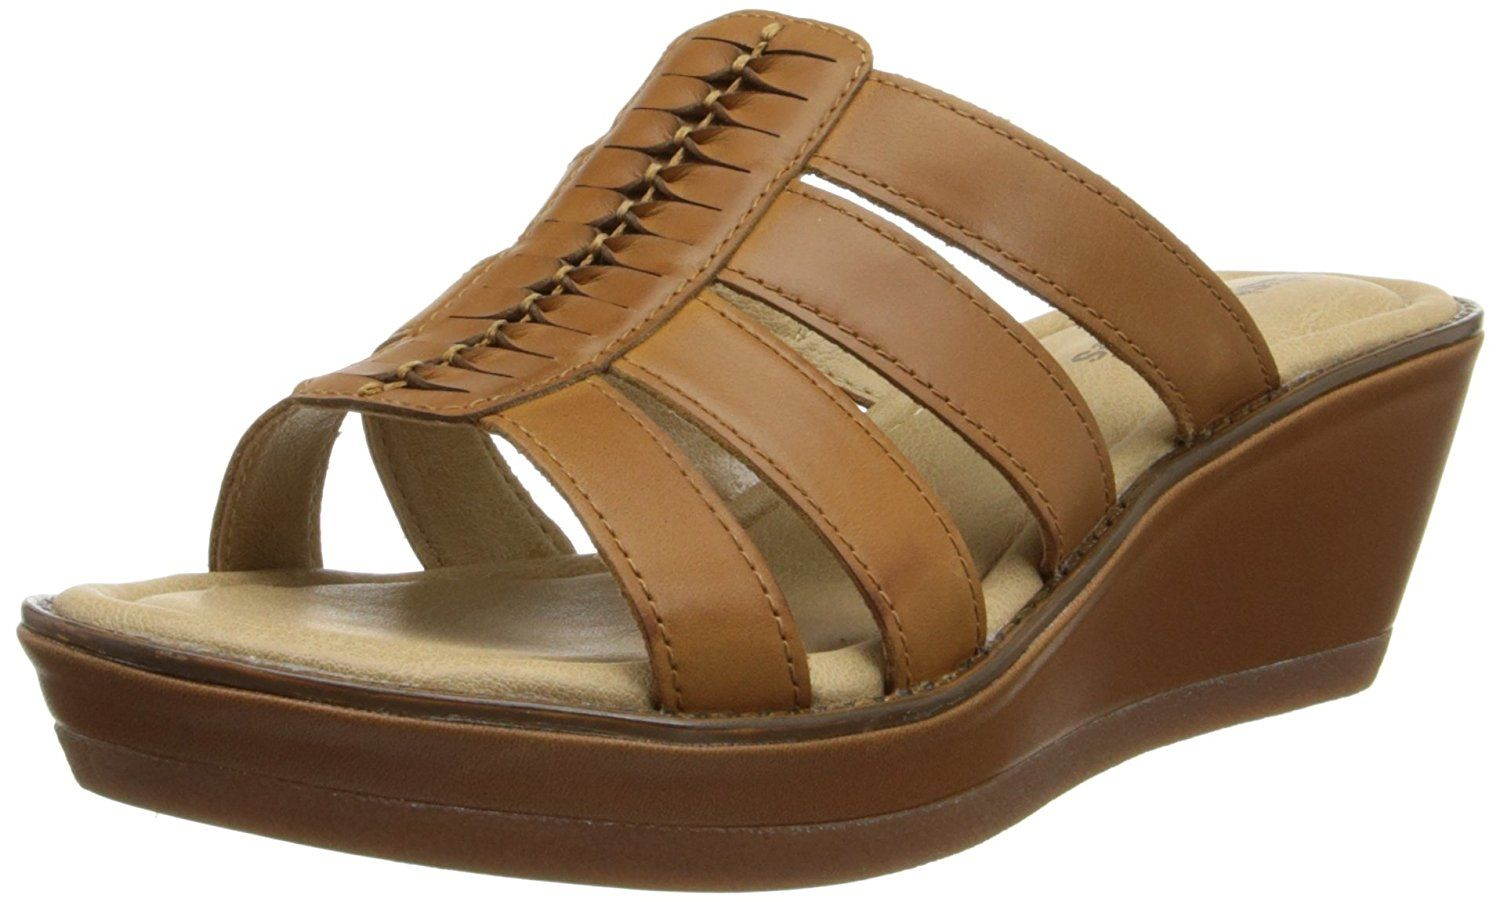 Hush Puppies Women S Roux Slide Dress Sandal New And Awesome Product Awaits You Read It Now Slid Hush Puppies Women Casual Sandals Womens Dress Sandals